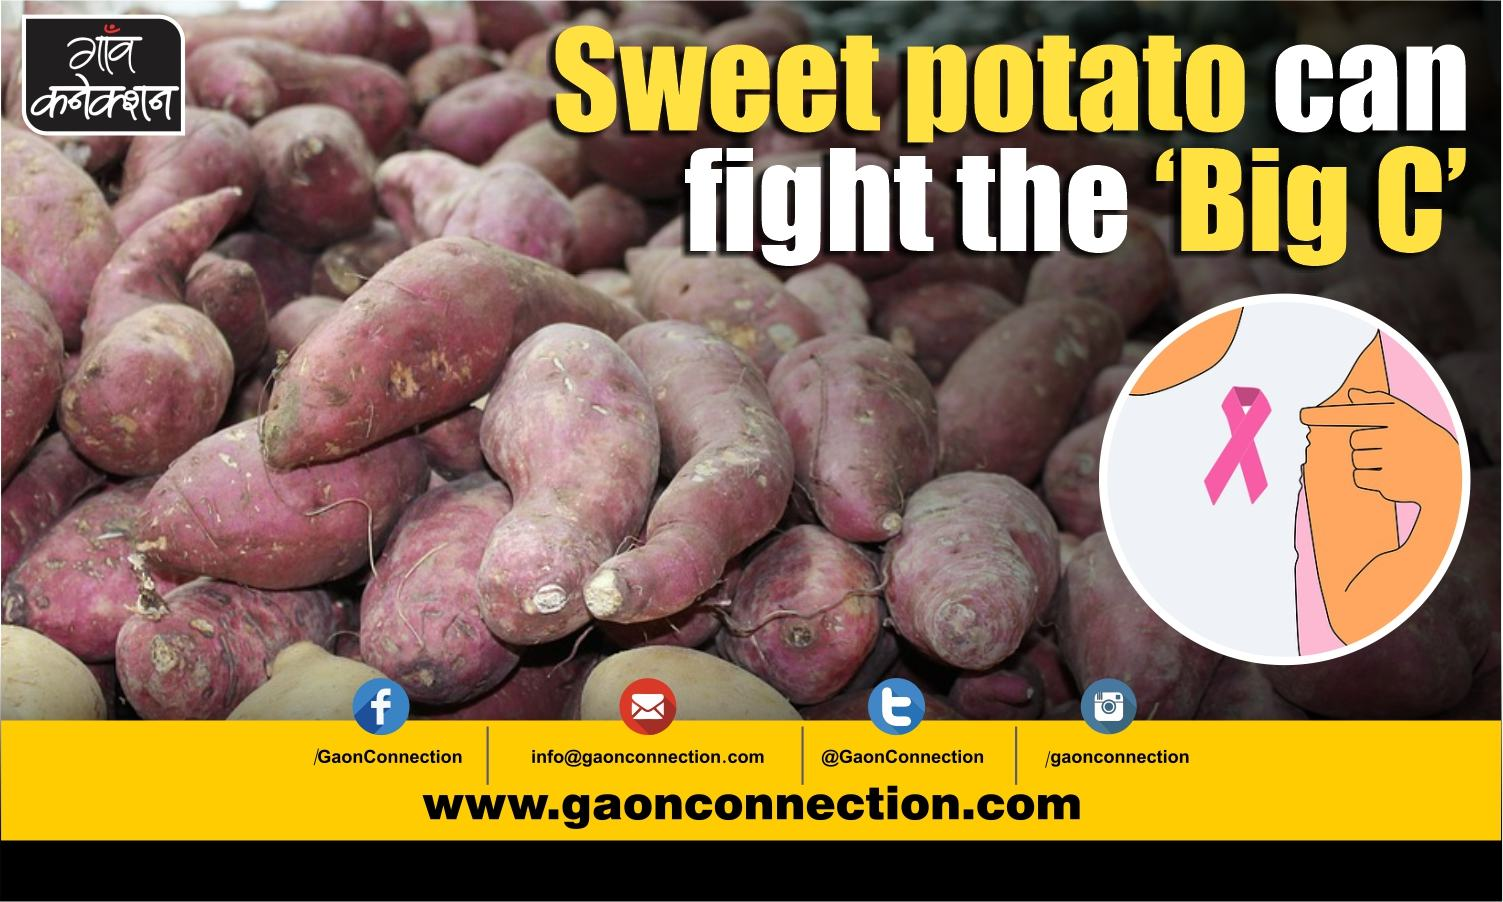 Have sweet potatoes, reduce the risk of breast cancer by 24%